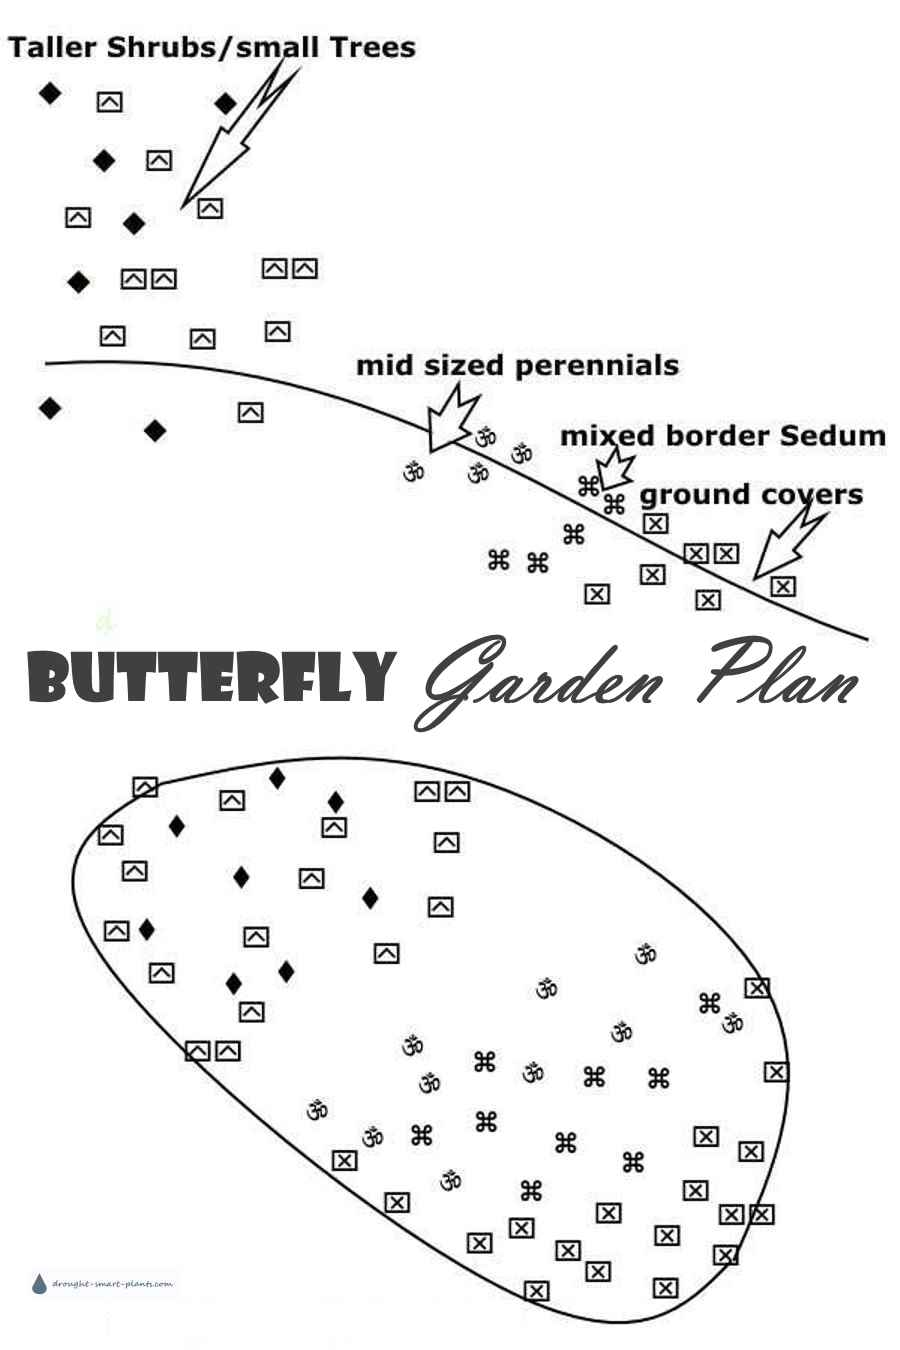 Butterfly Garden Plan   Where To Put It Alll.